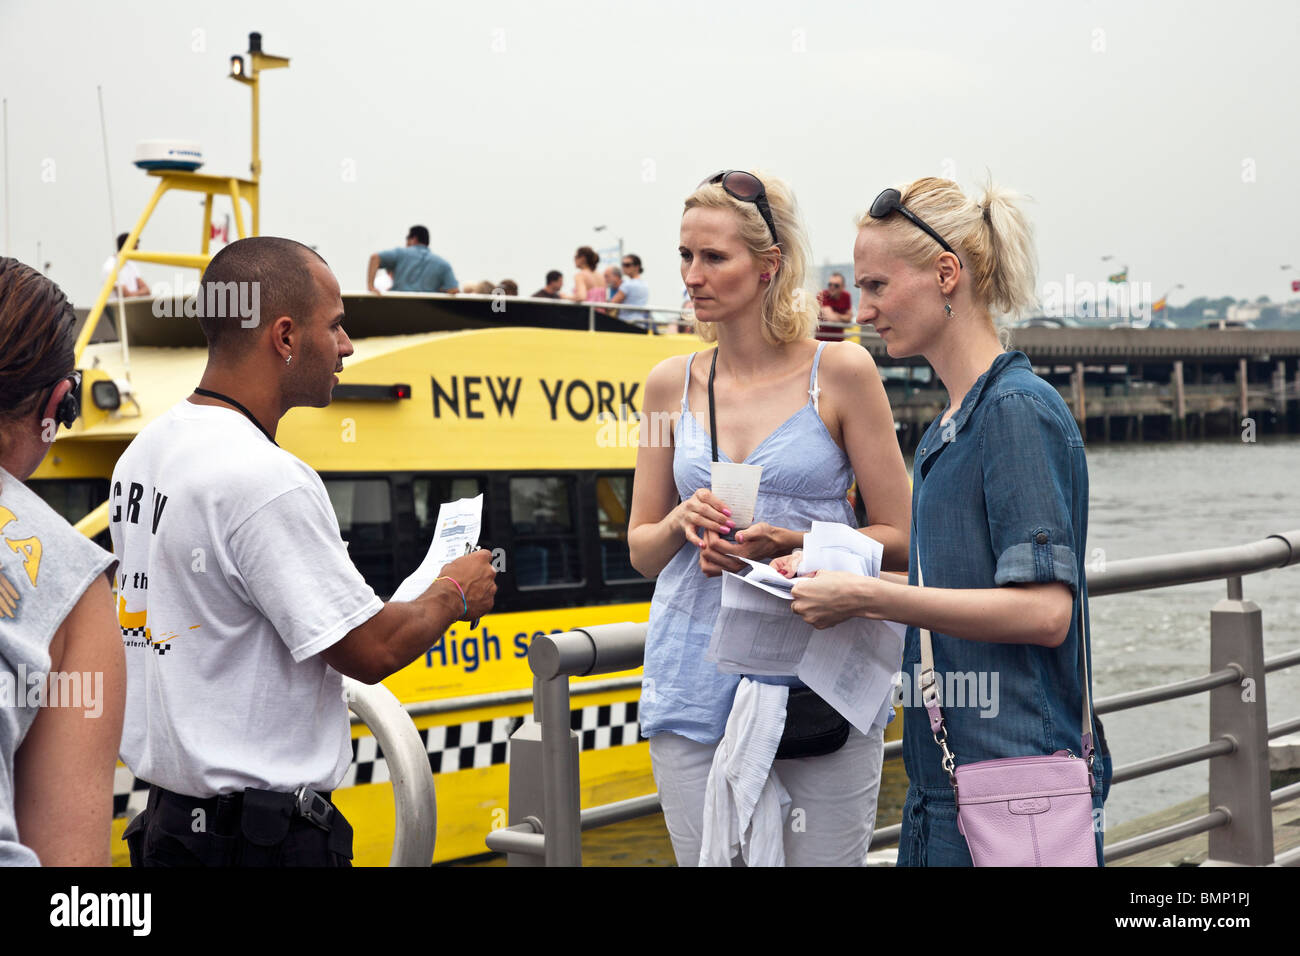 two very blond Nordic tourist sisters embark from Manhattan pier on New York Water Taxi tour of Manhattan waterfront - Stock Image